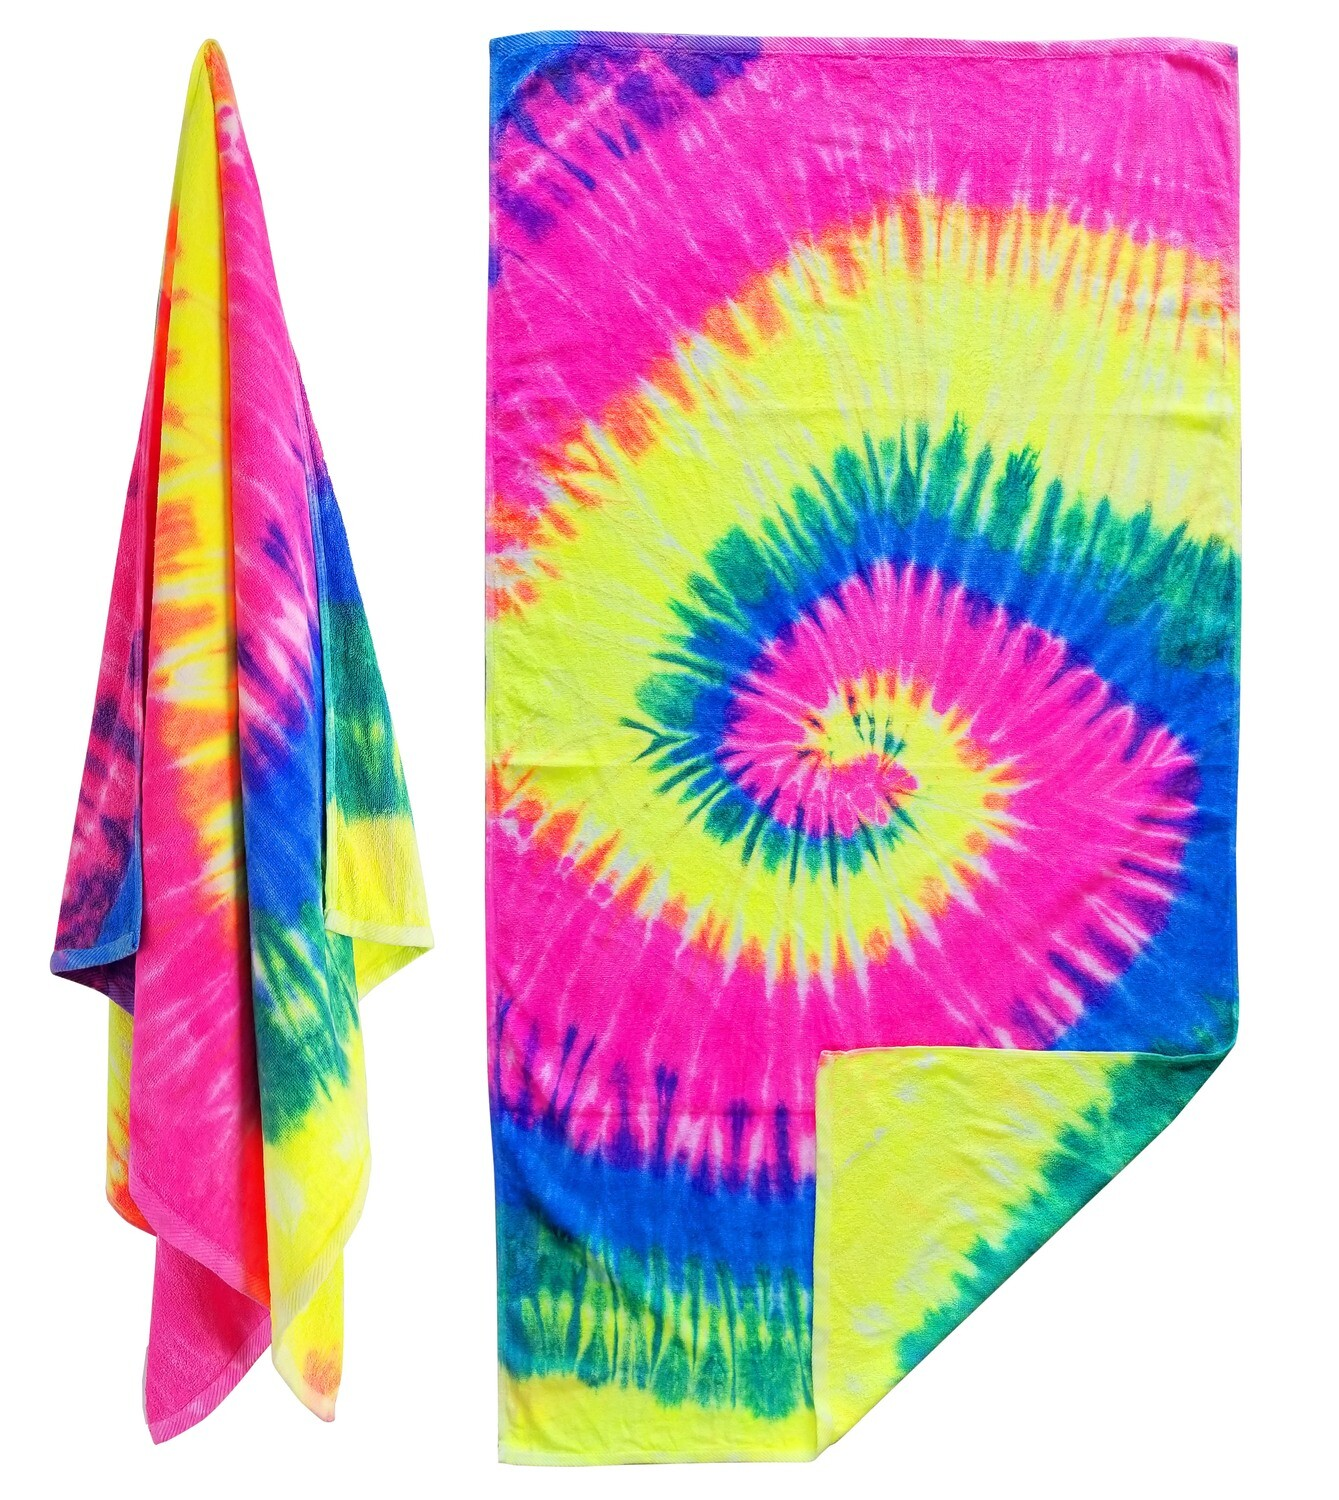 One of a Kind Tie Dye beach towels Done by Hand. The Real Deal! Don't settle for PRINTED TIE DYE! [Packs of 2] 30x60 11.5 LBS per dz weight beach towel. 100% cotton as towels should be!